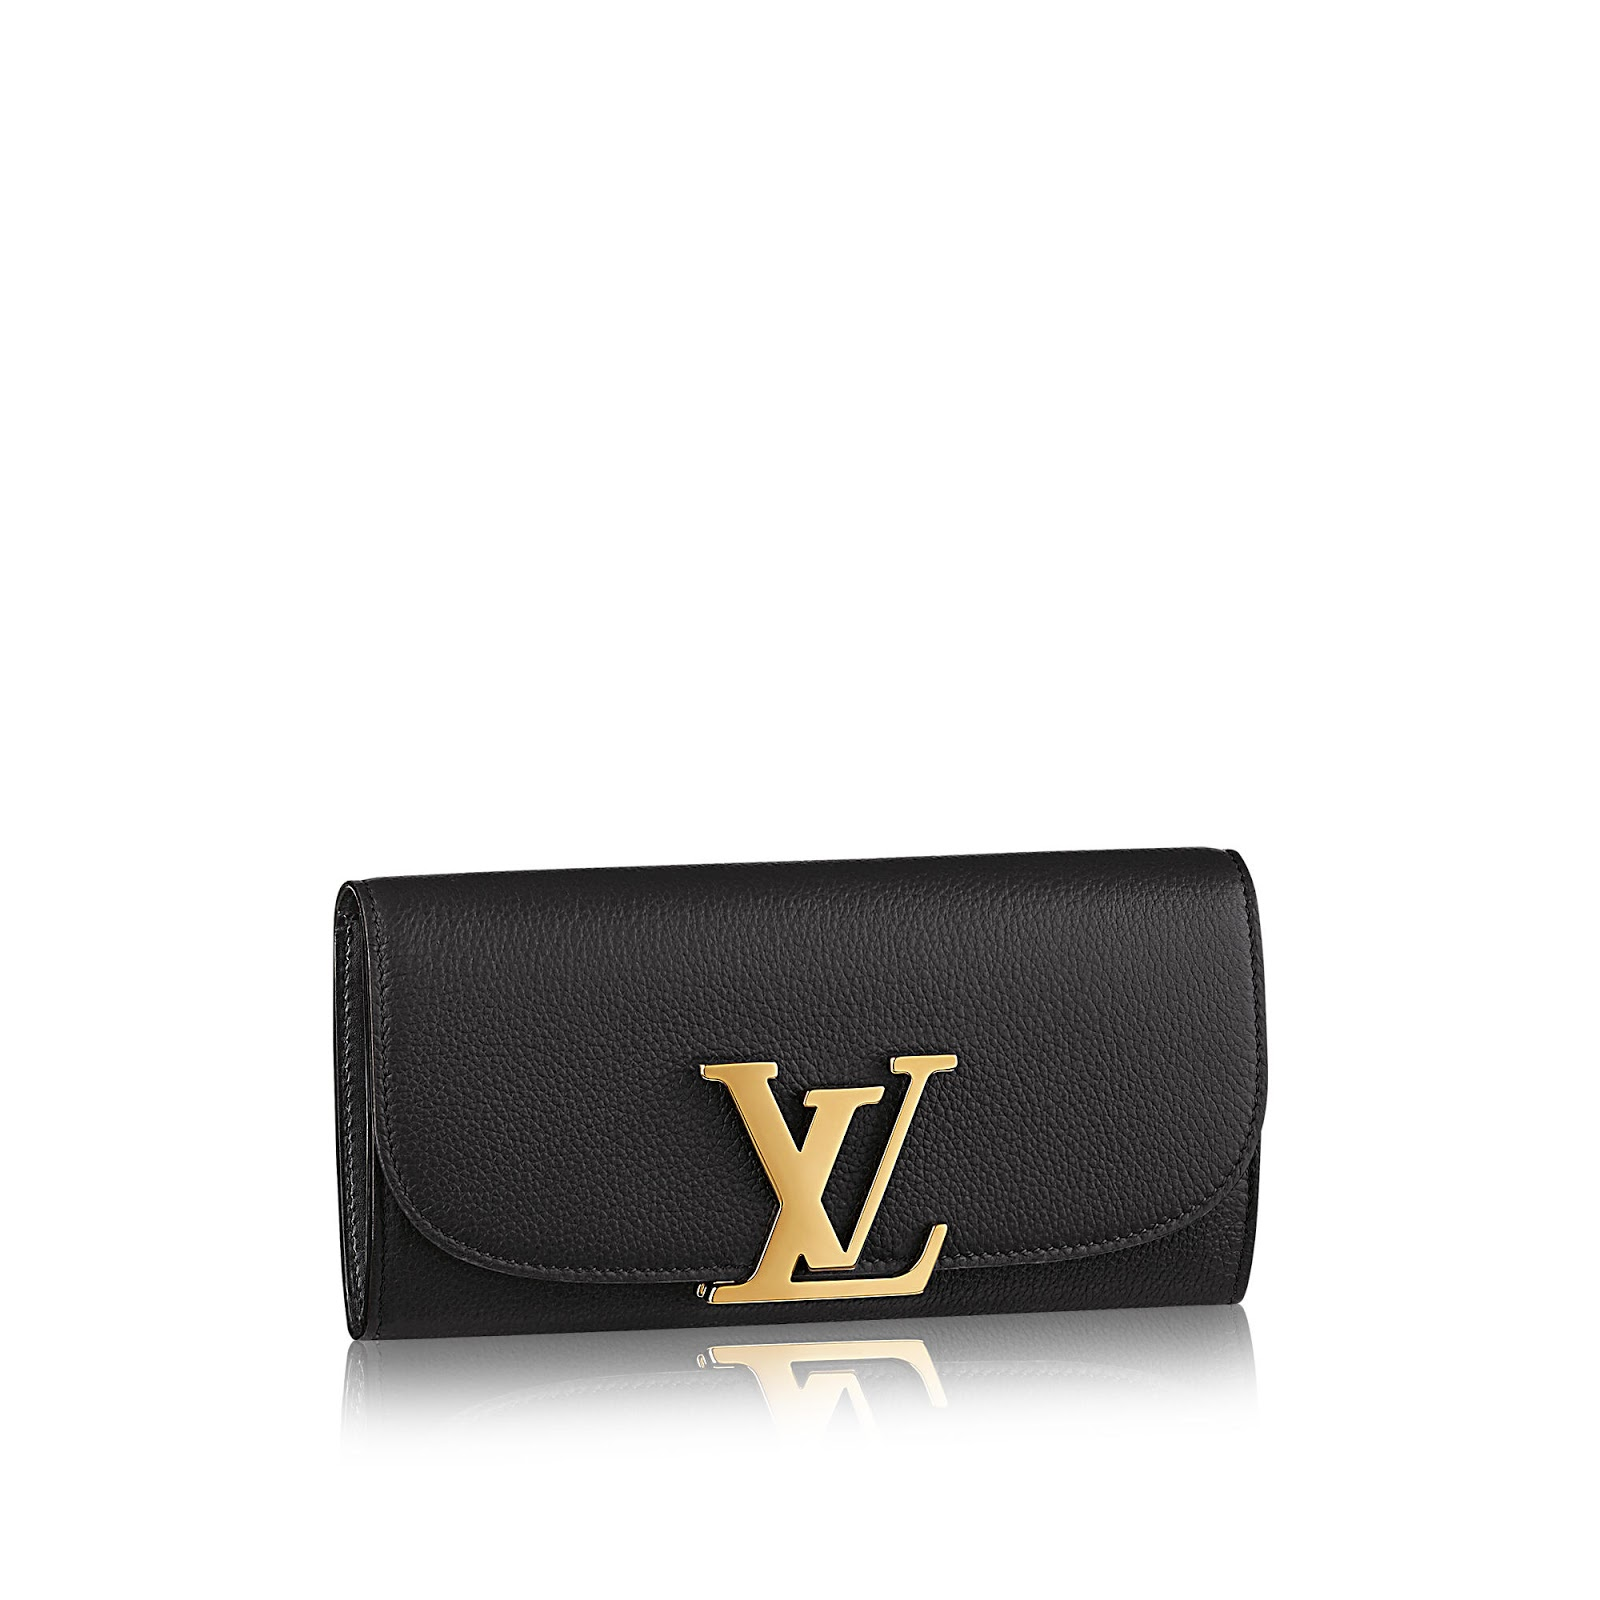 louis vuitton wallet for women | فتافيت